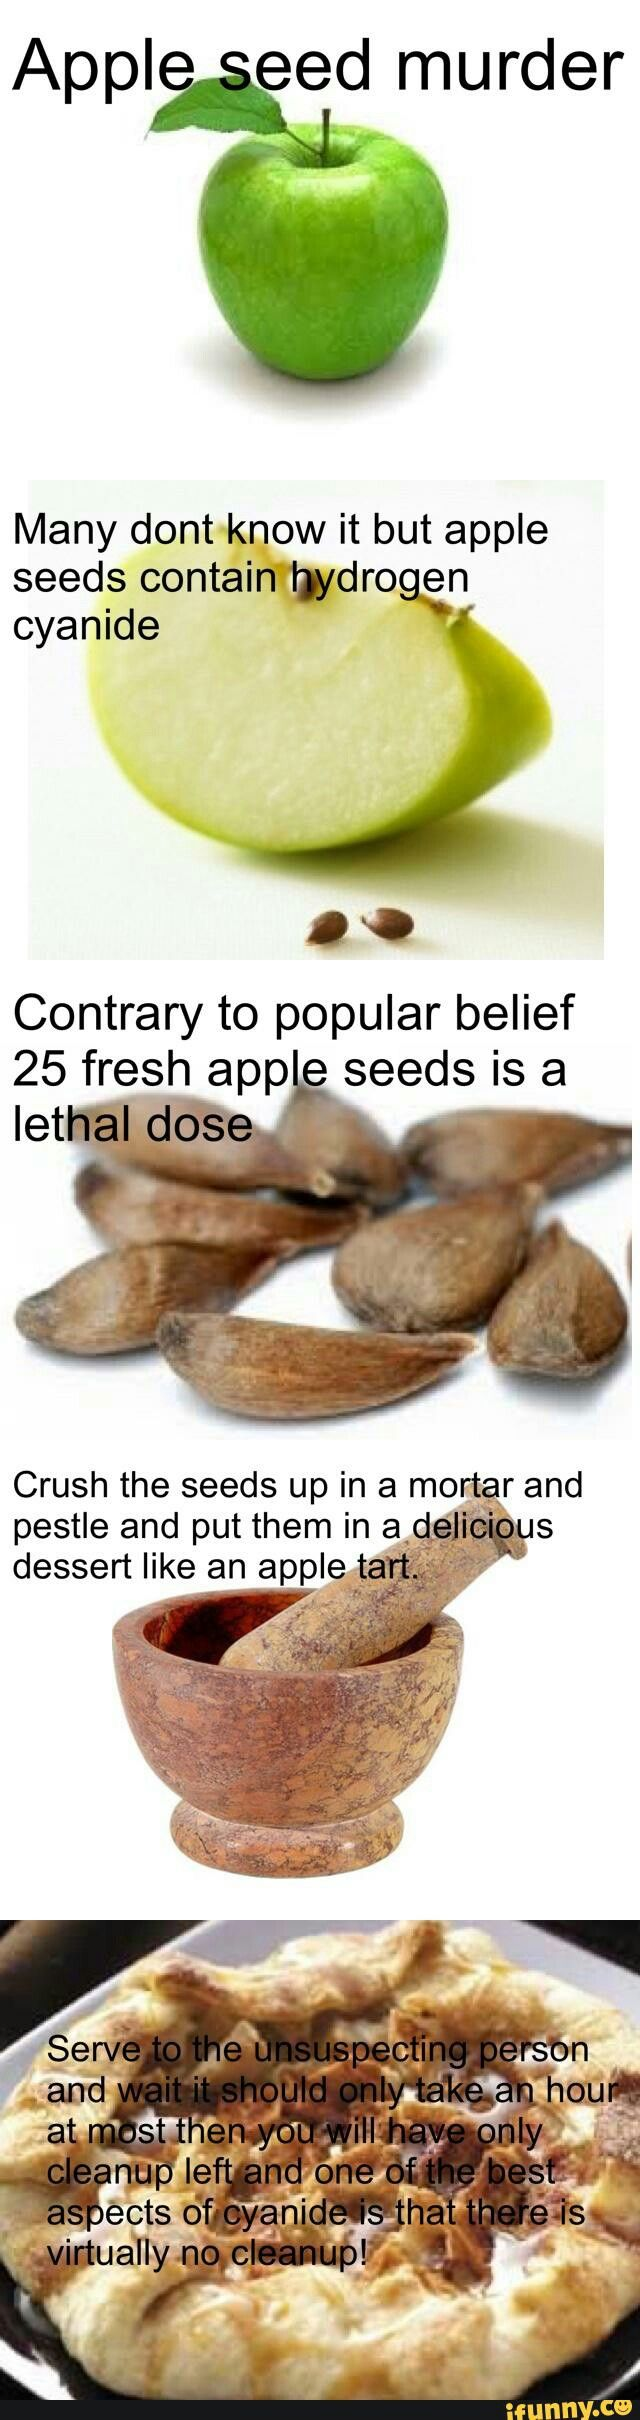 It's probably more trouble than it's worth, but still interesting. I'd suggest cherry pits though, they carry more cyanide and it's easier to buy a bunch of them.